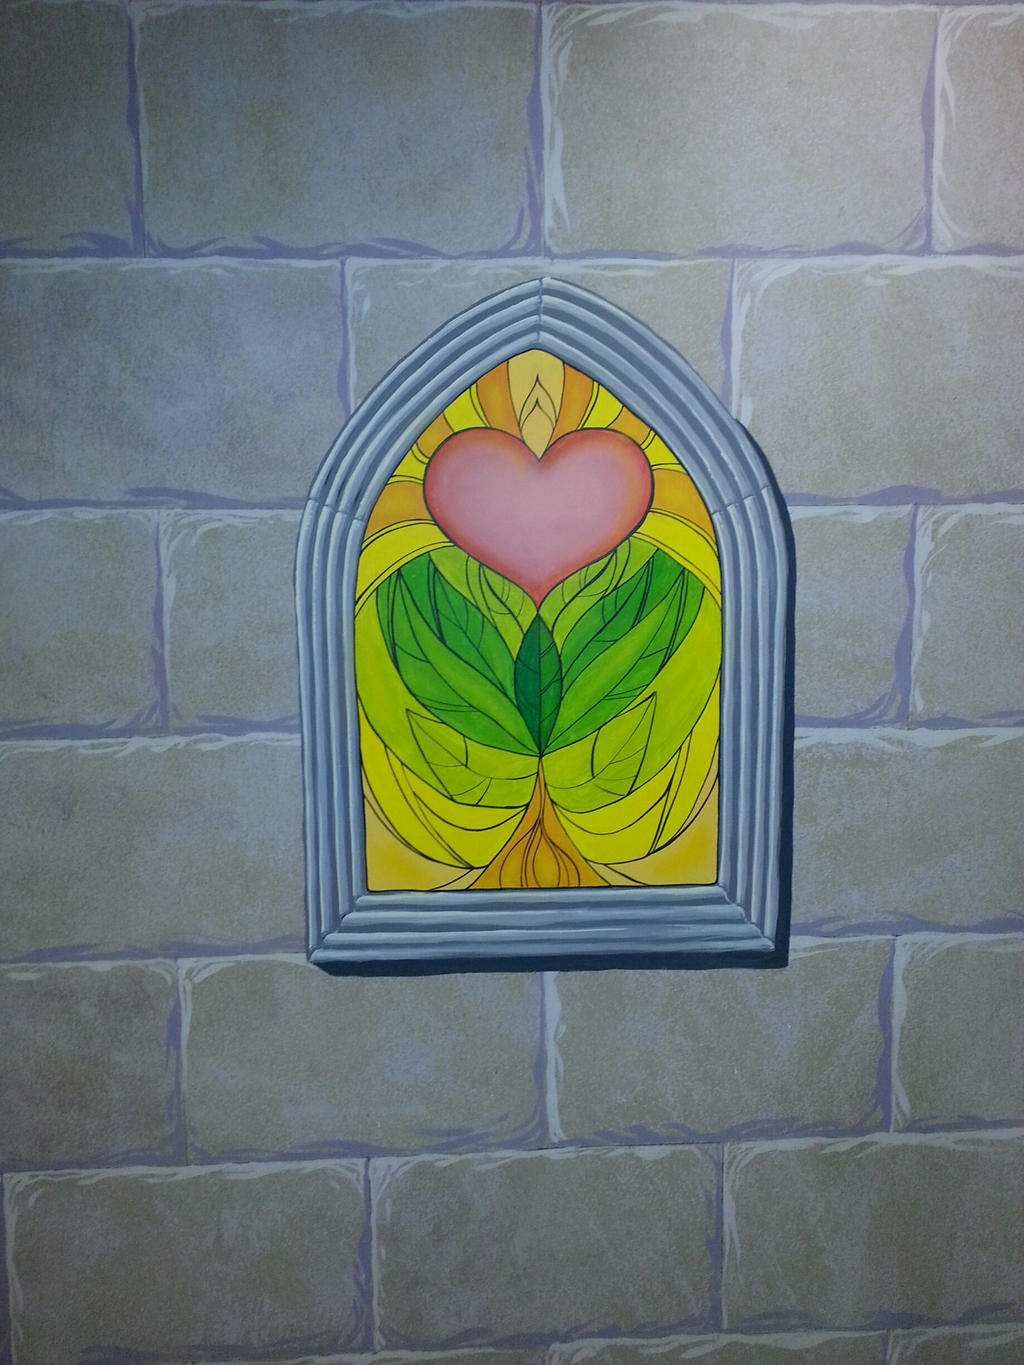 Stained glass window mural work by mjbivouac on deviantart for Mural work using m seal